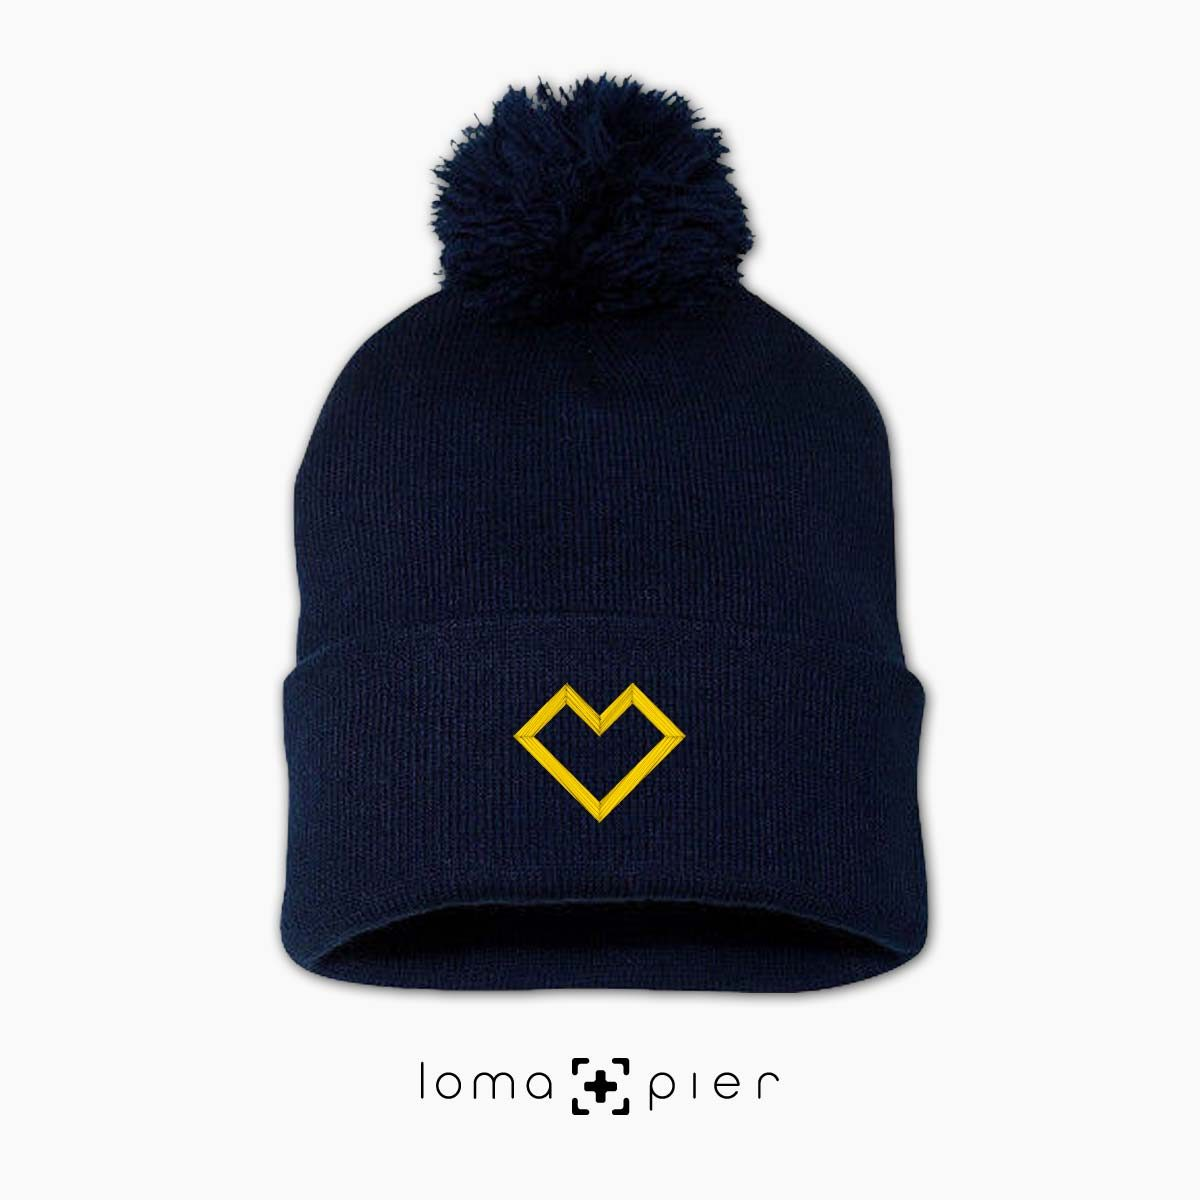 EDGY HEART icon embroidered on a navy blue pom pom beanie with yellow thread by loma+pier hat store